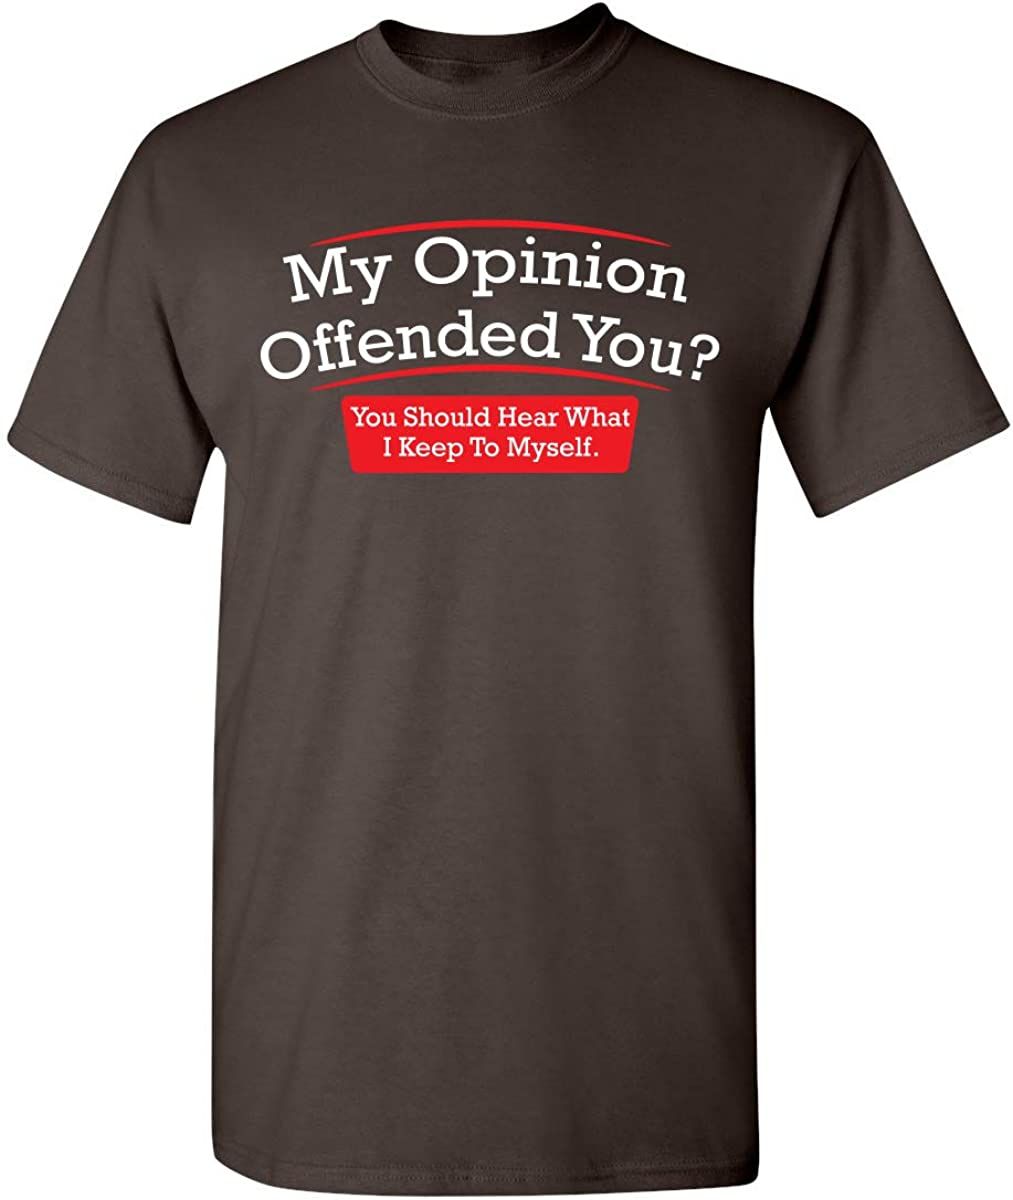 My Opinion Offended You Adult Humor Novelty Sarcasm Witty Mens Funny T Shirt